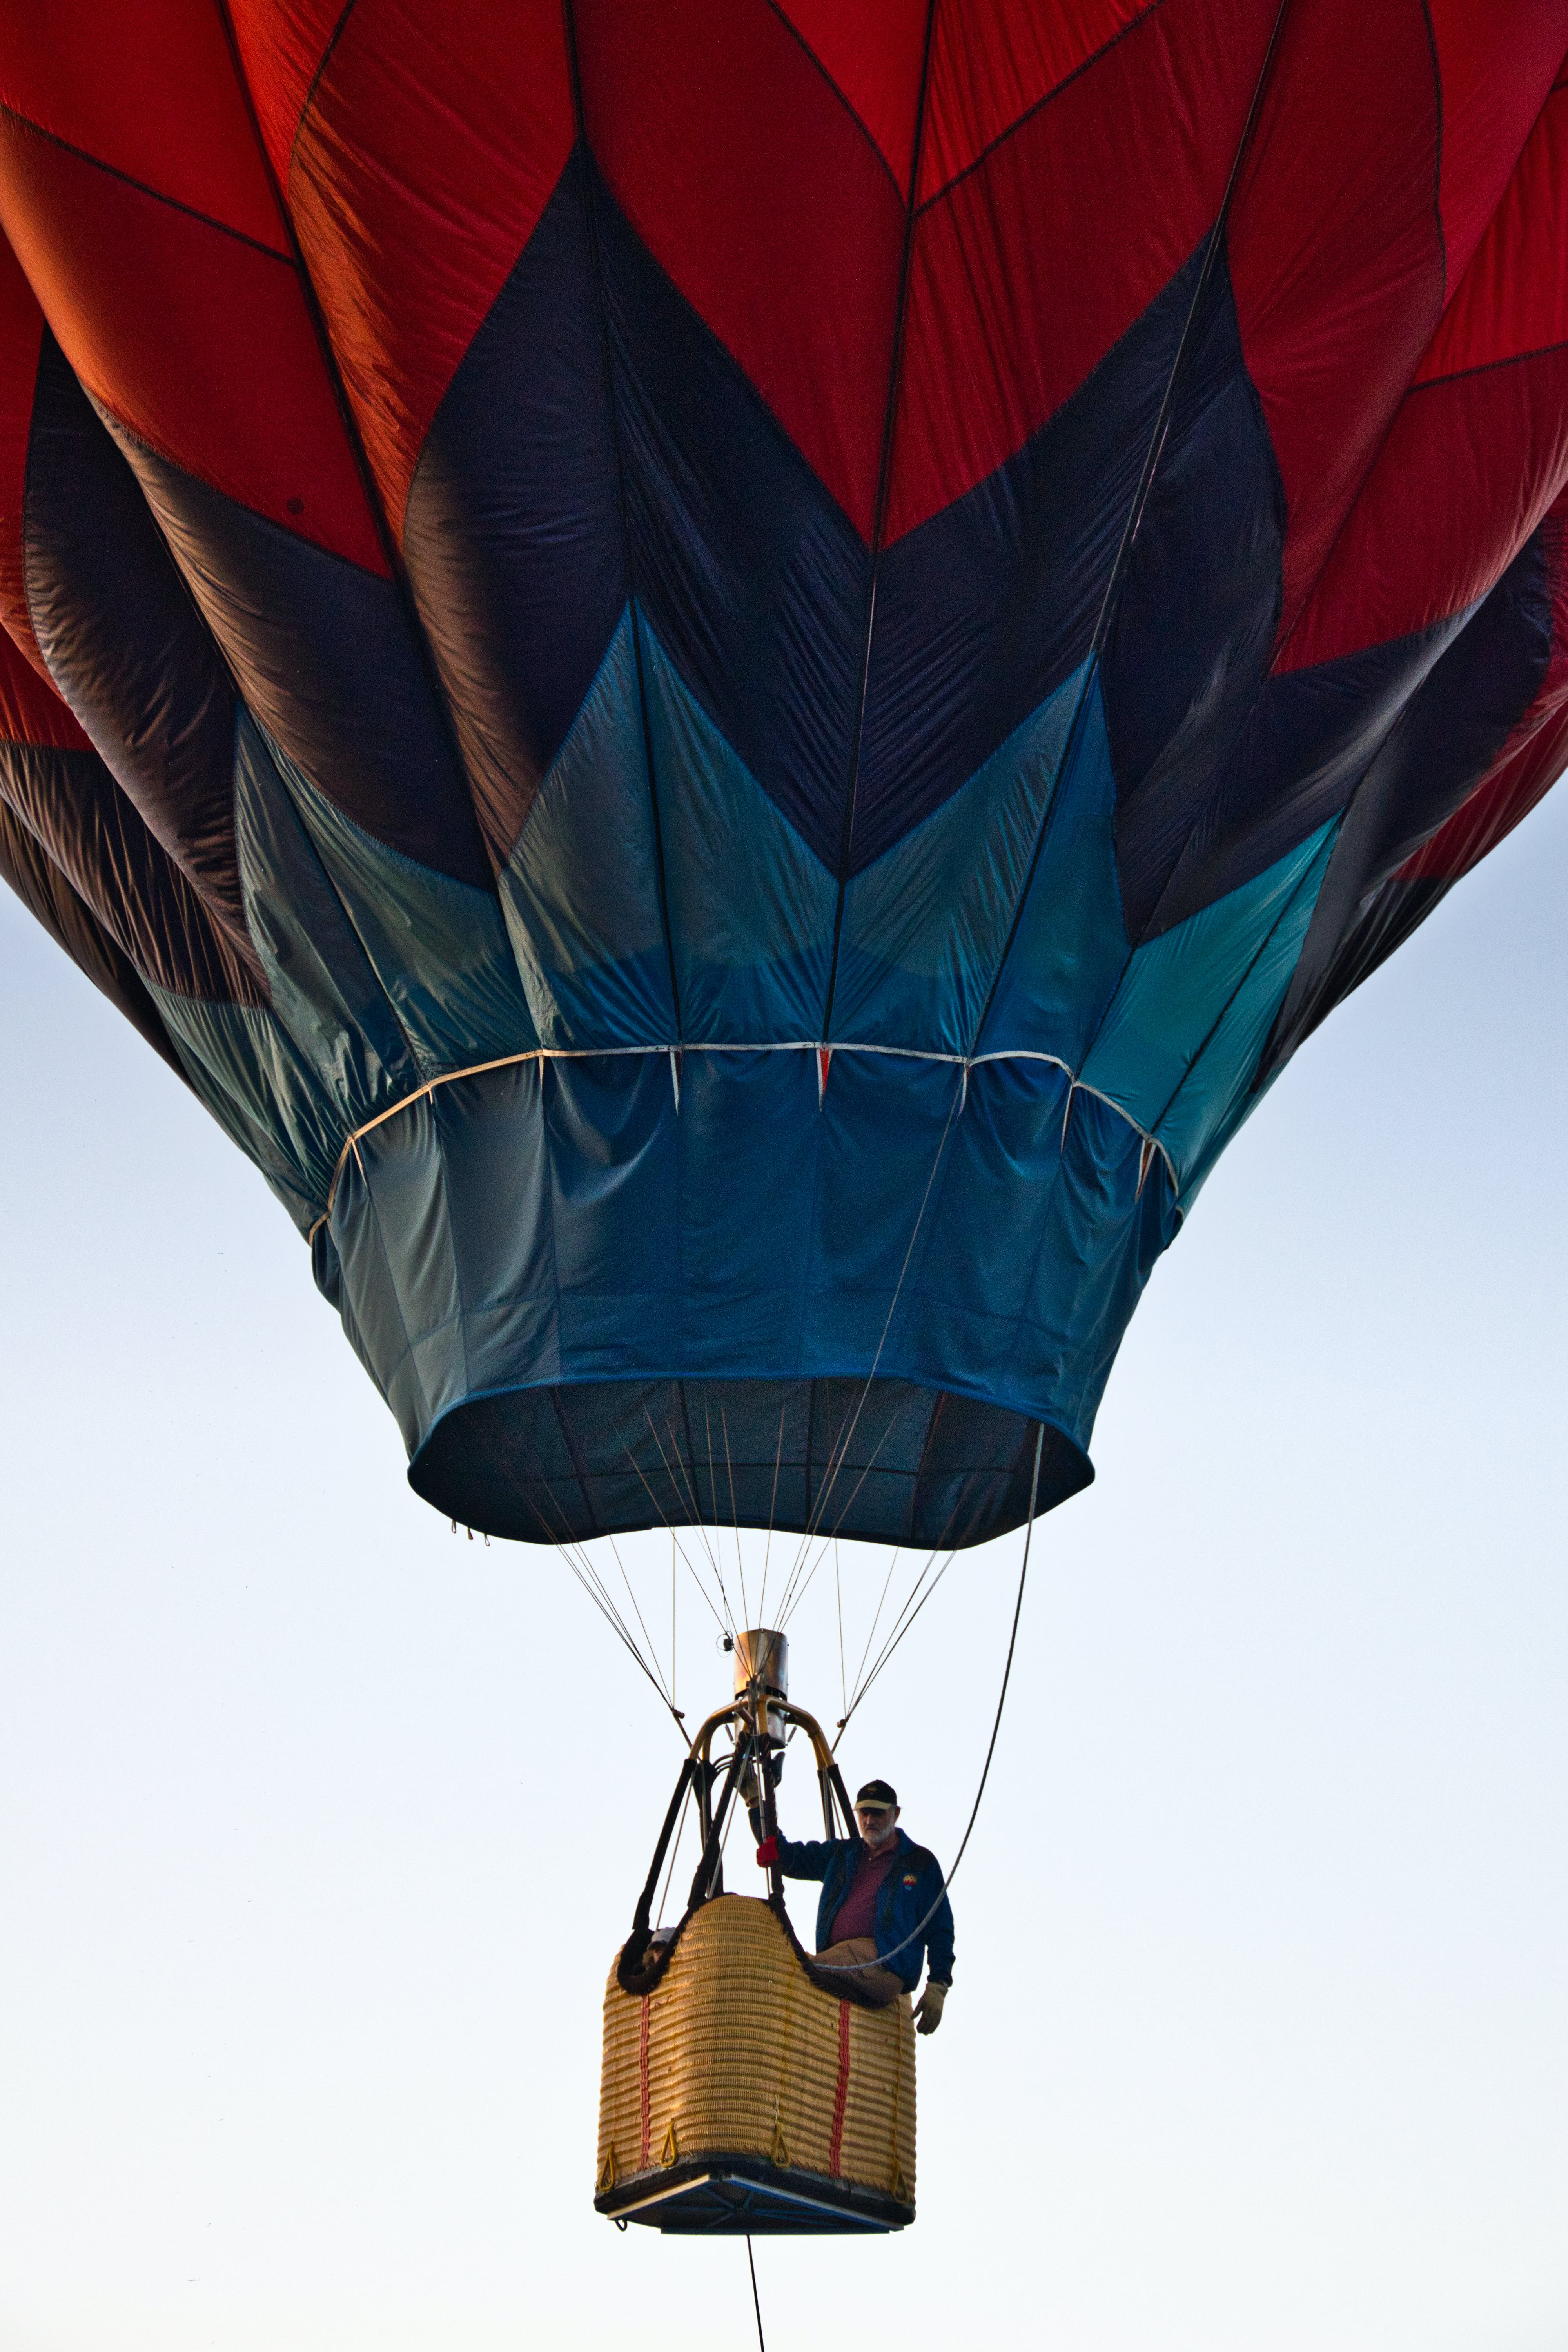 Man Riding Blue and Red Hot Air Balloon during Day